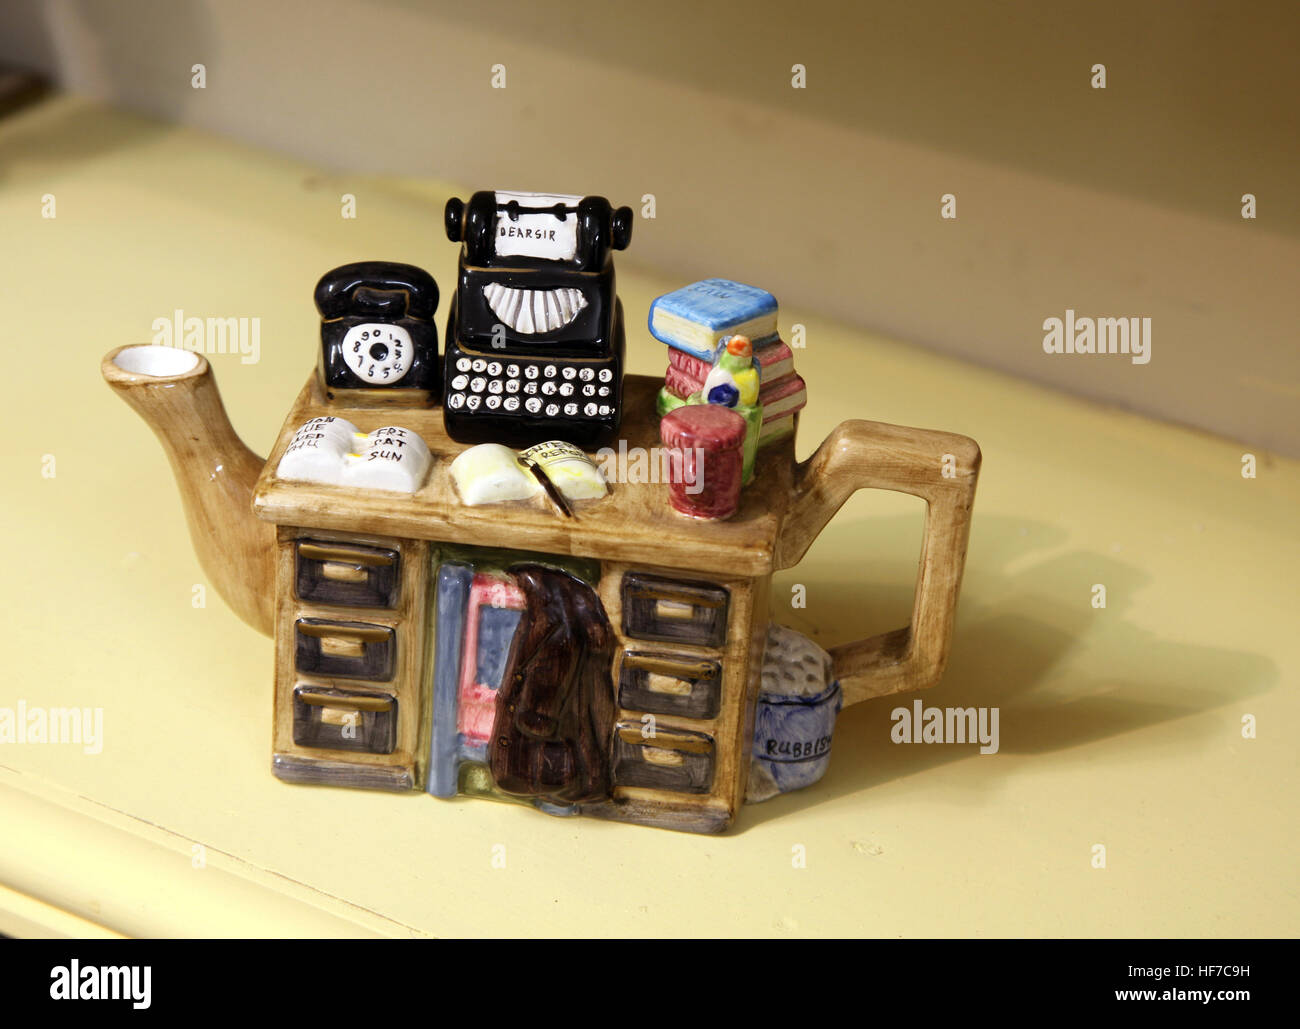 novelty teapot as writer's desk - Stock Image